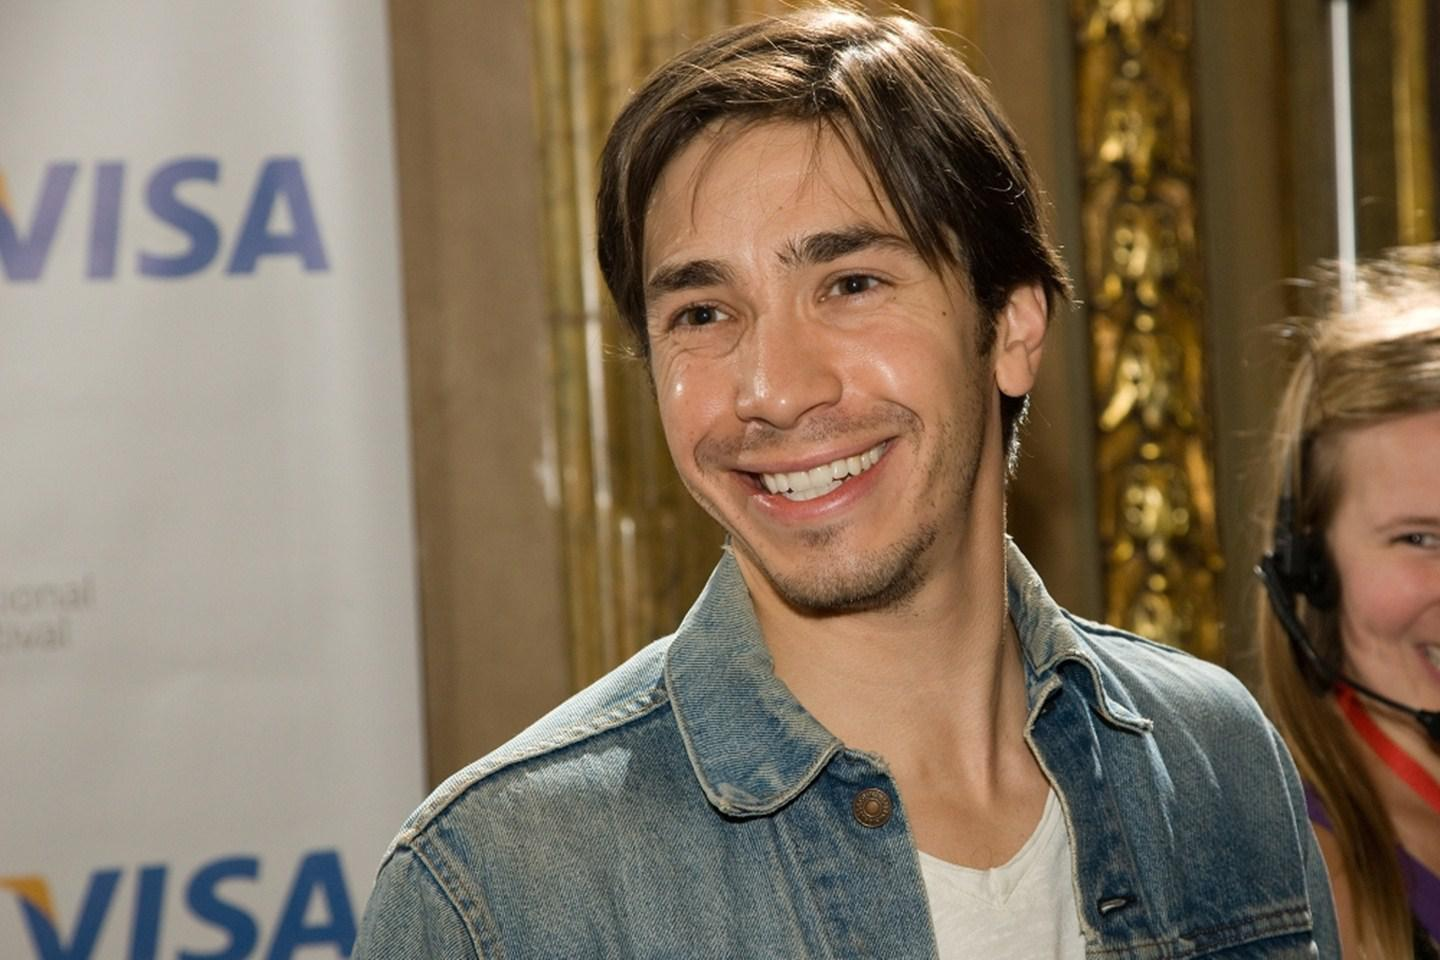 Very Cute Baby Wallpapers Photos Hd Justin Long Smiling Wallpaper Download Free 138863